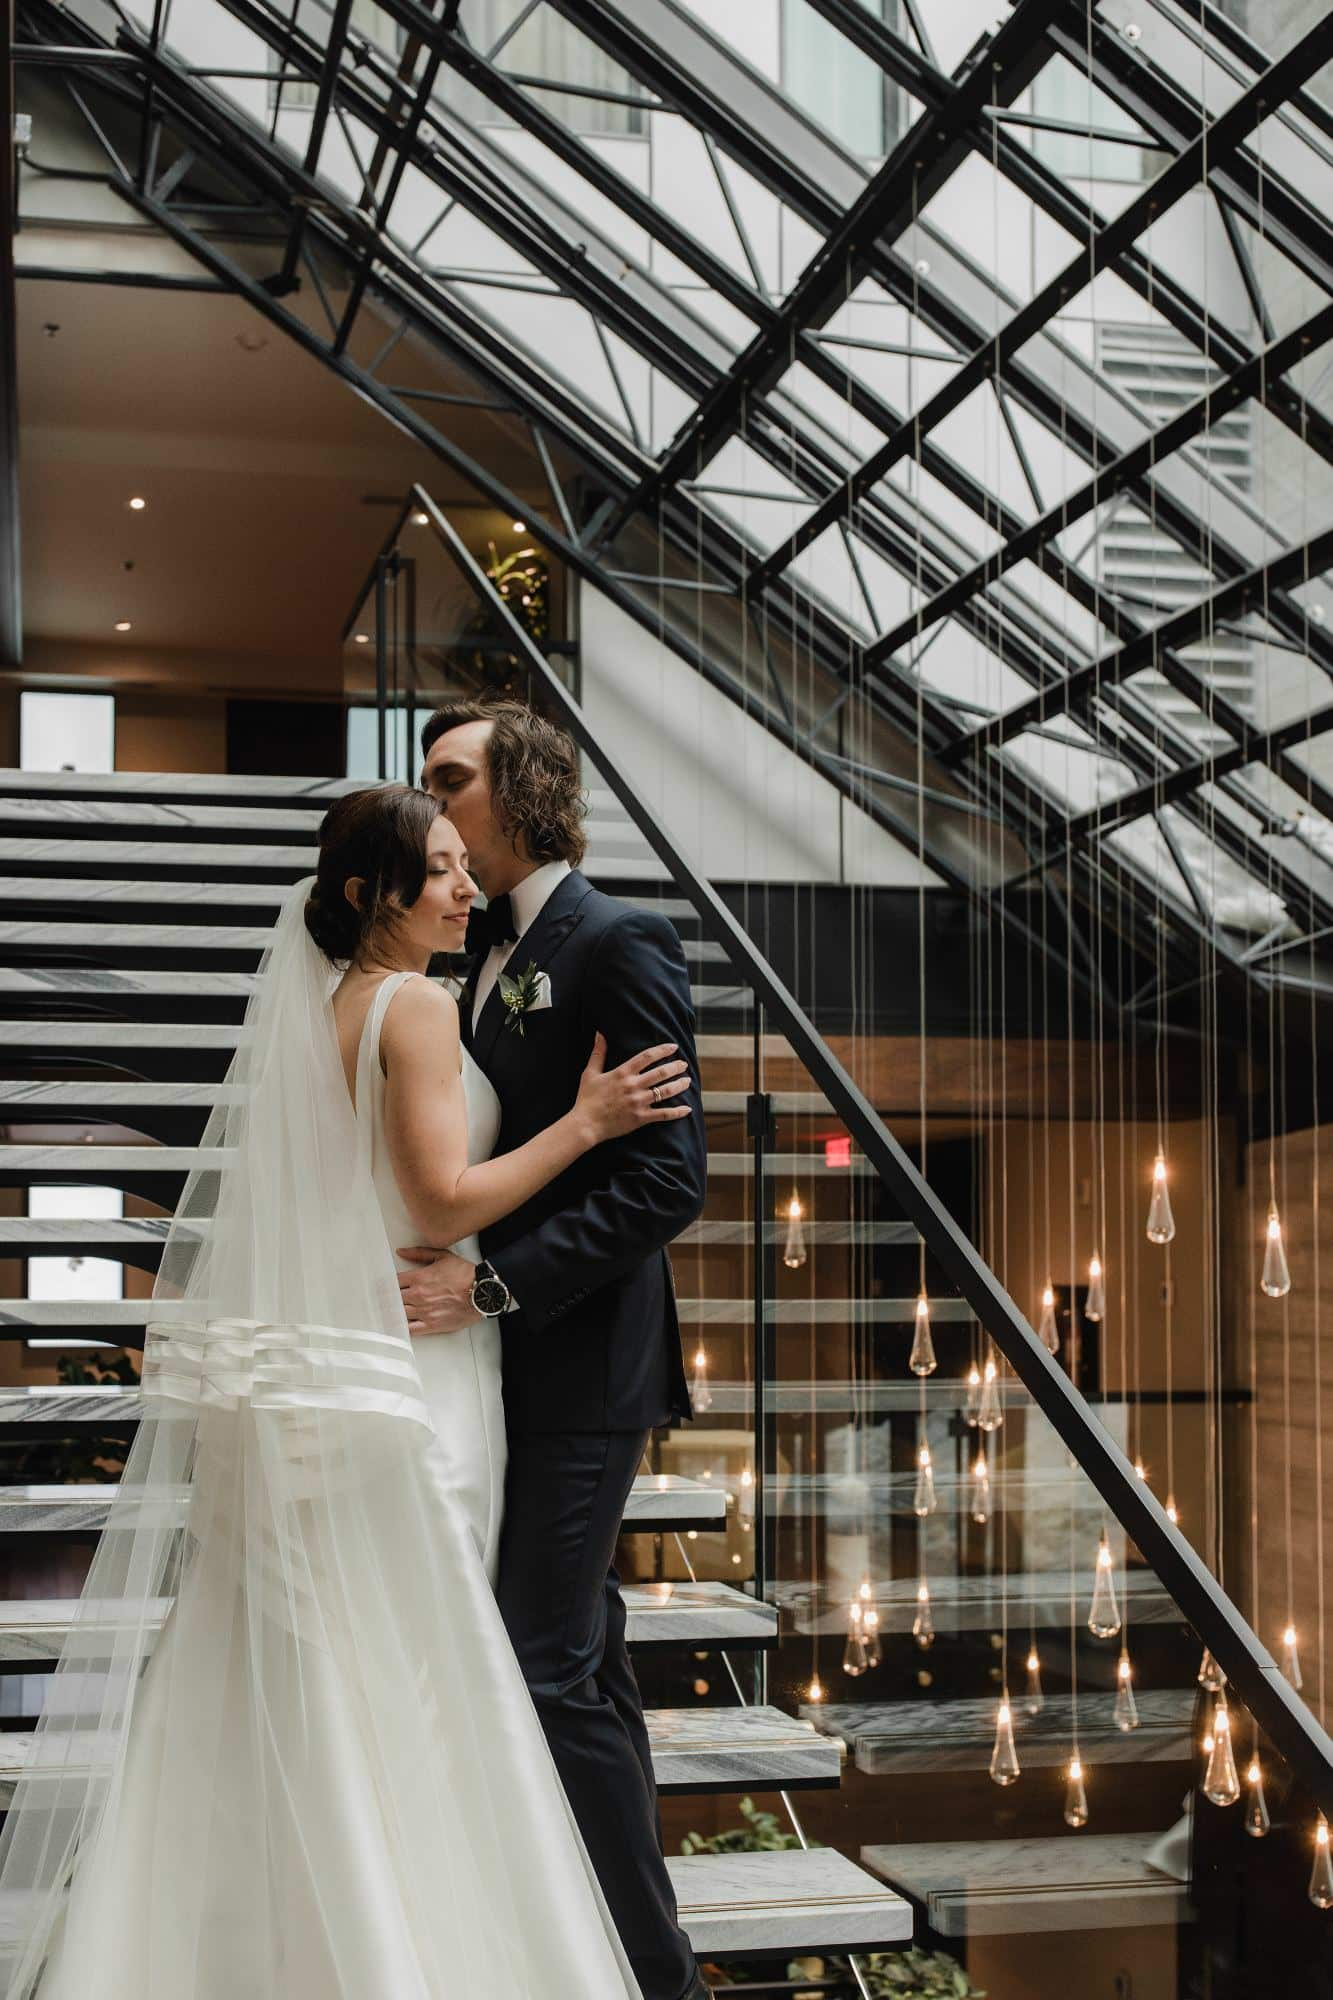 Bride and groom embrace on steps with hanging lights in background in the lobby of Hotel William Grey